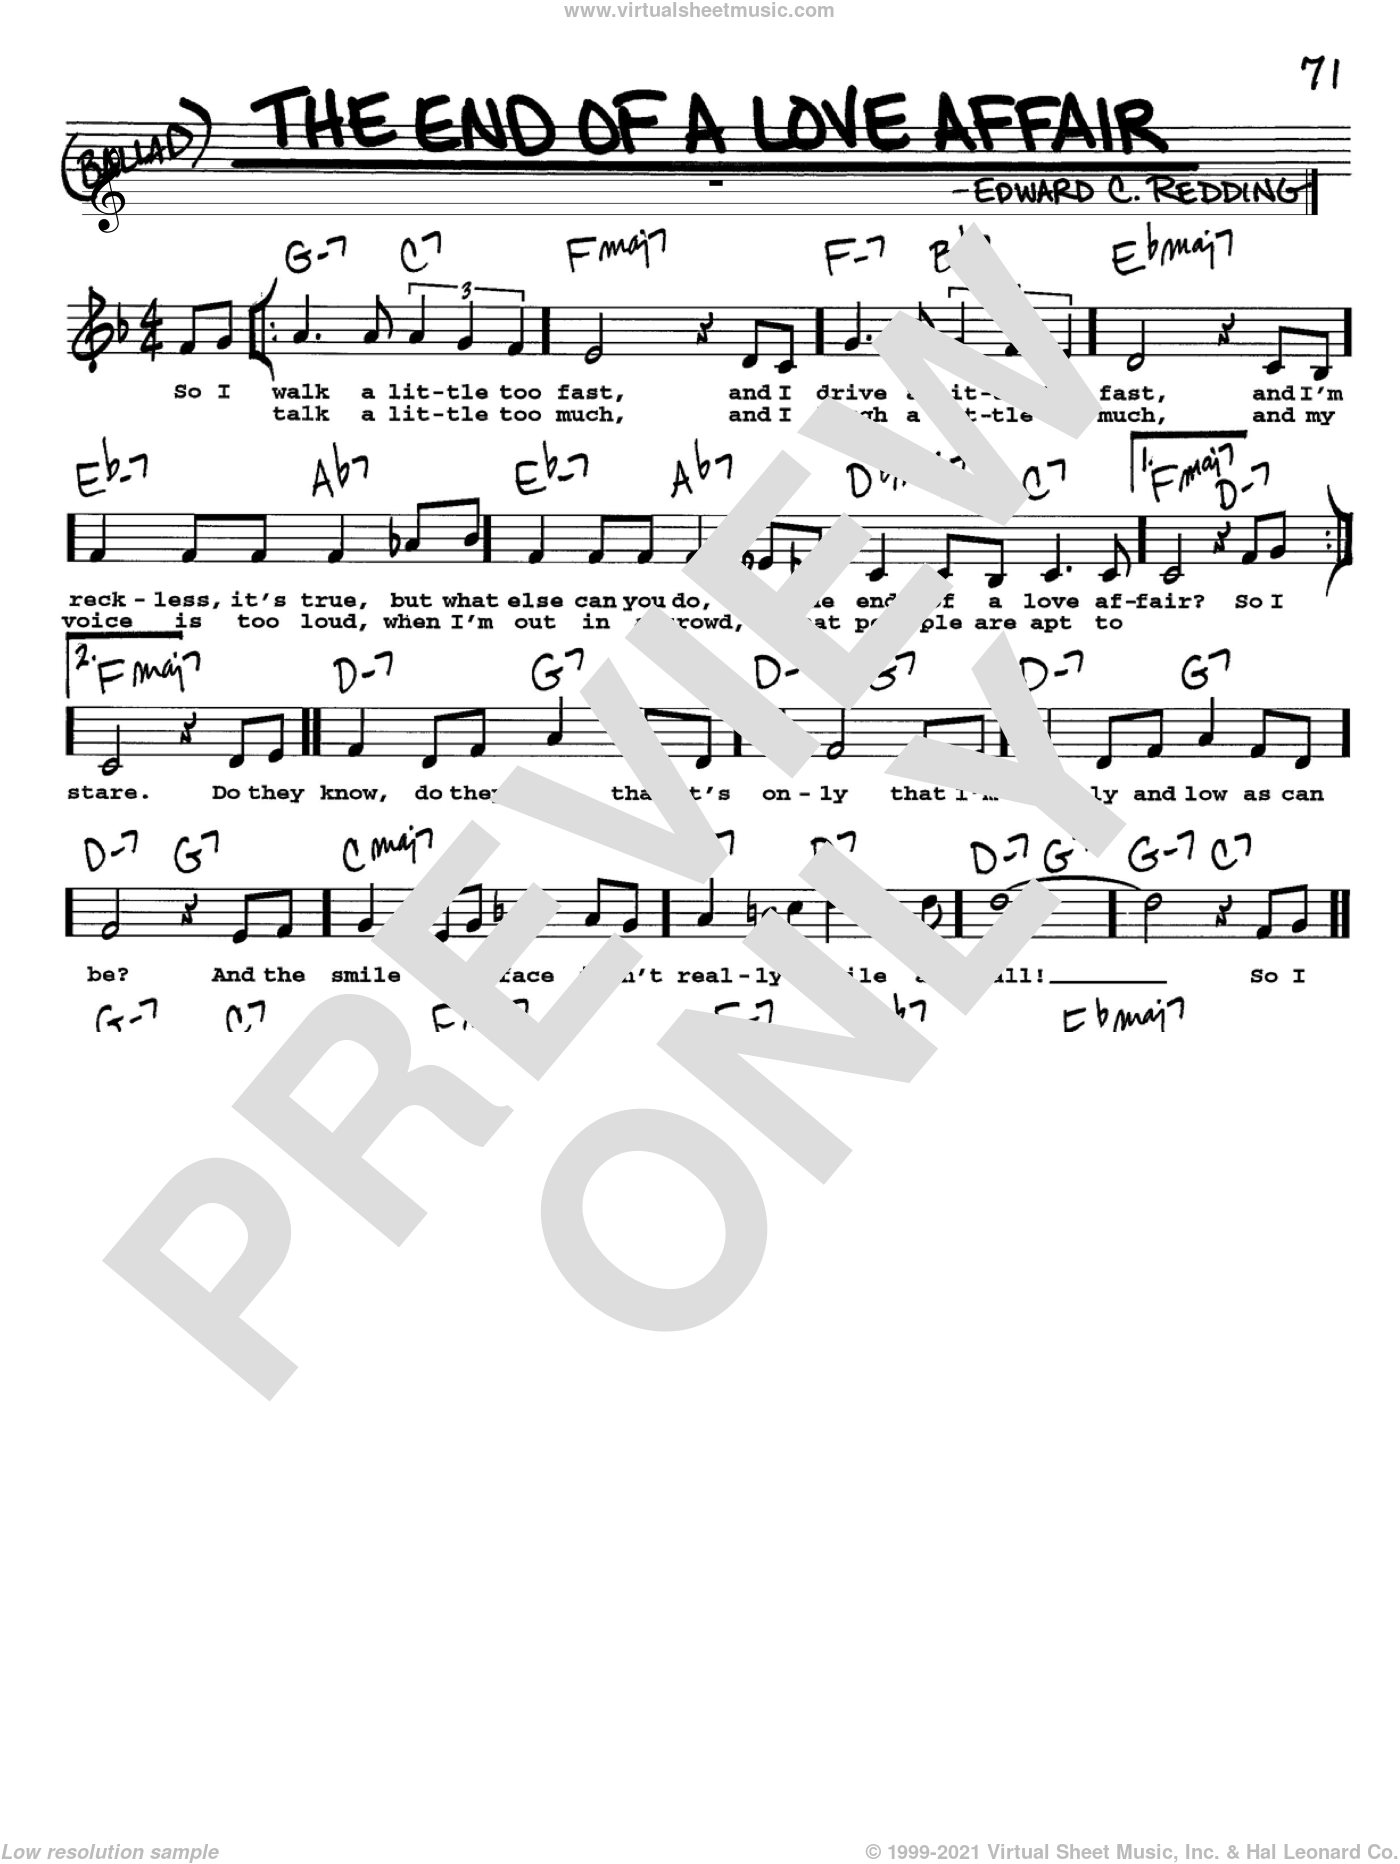 The End Of A Love Affair sheet music for voice and other instruments (Vocal Volume 2) by Edward Redding and Frank Sinatra. Score Image Preview.